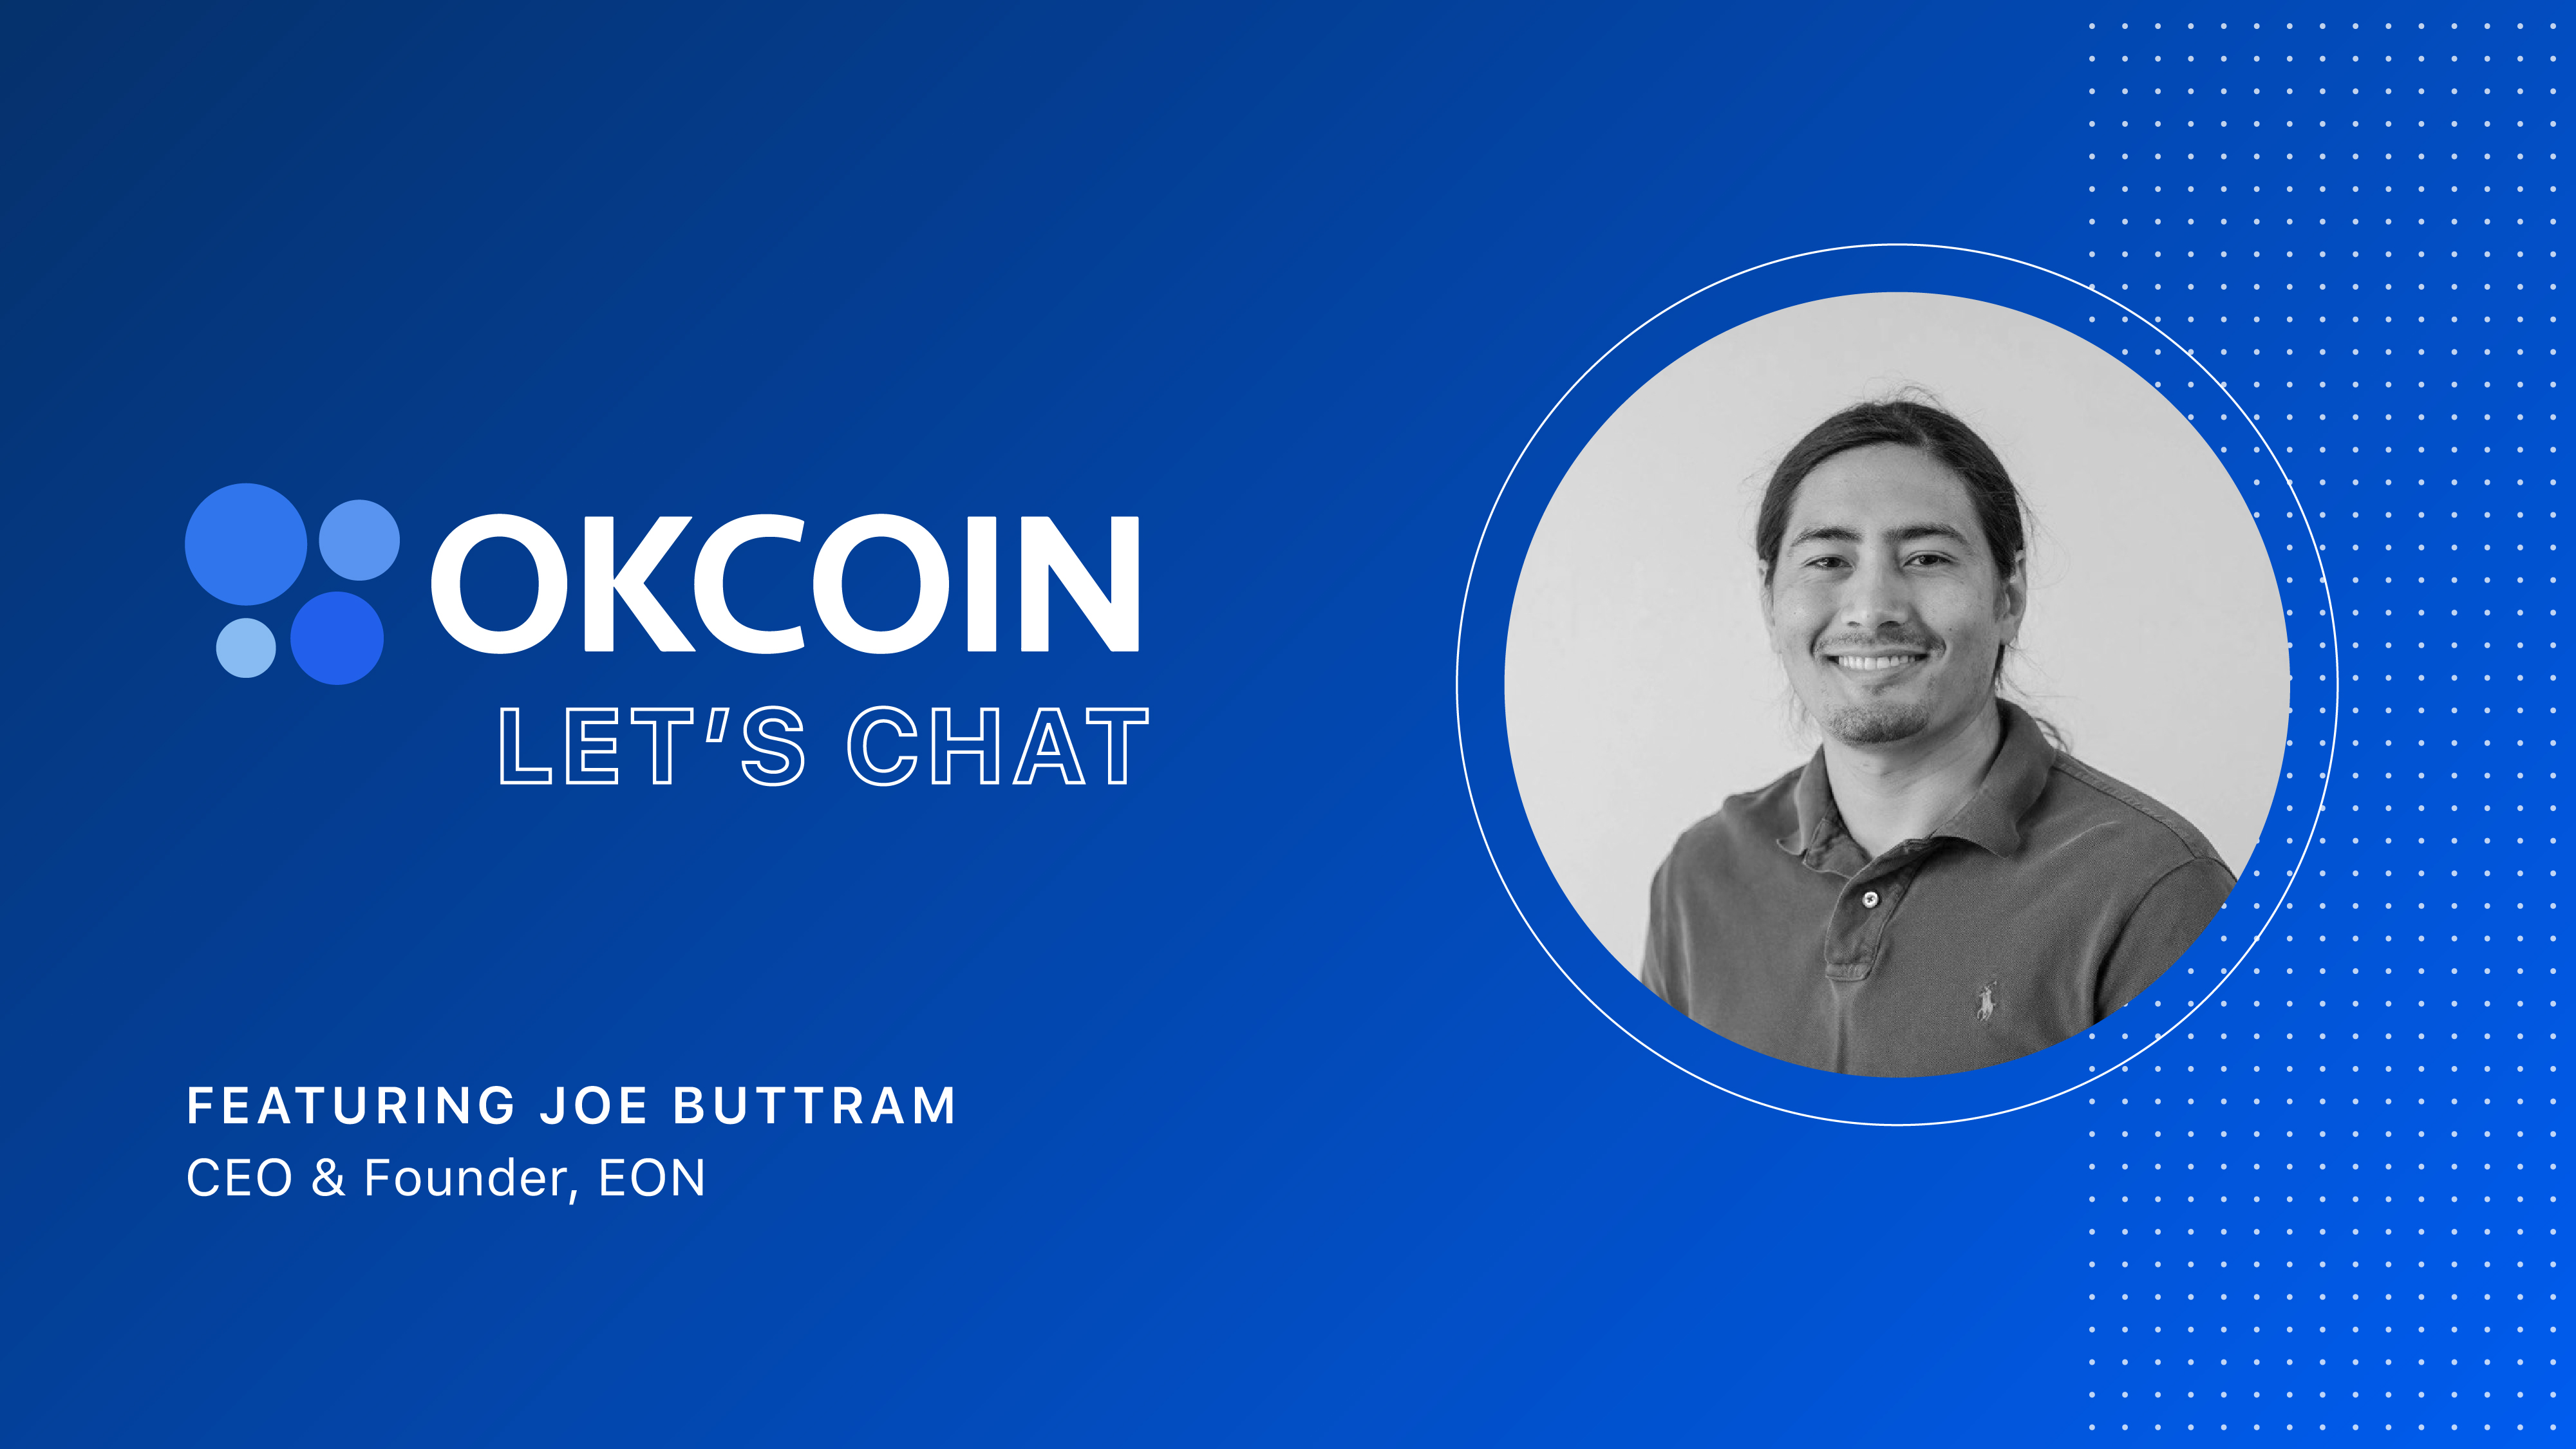 OKCoin Let's Chat - Joe Buttram - CEO & Founder of EON